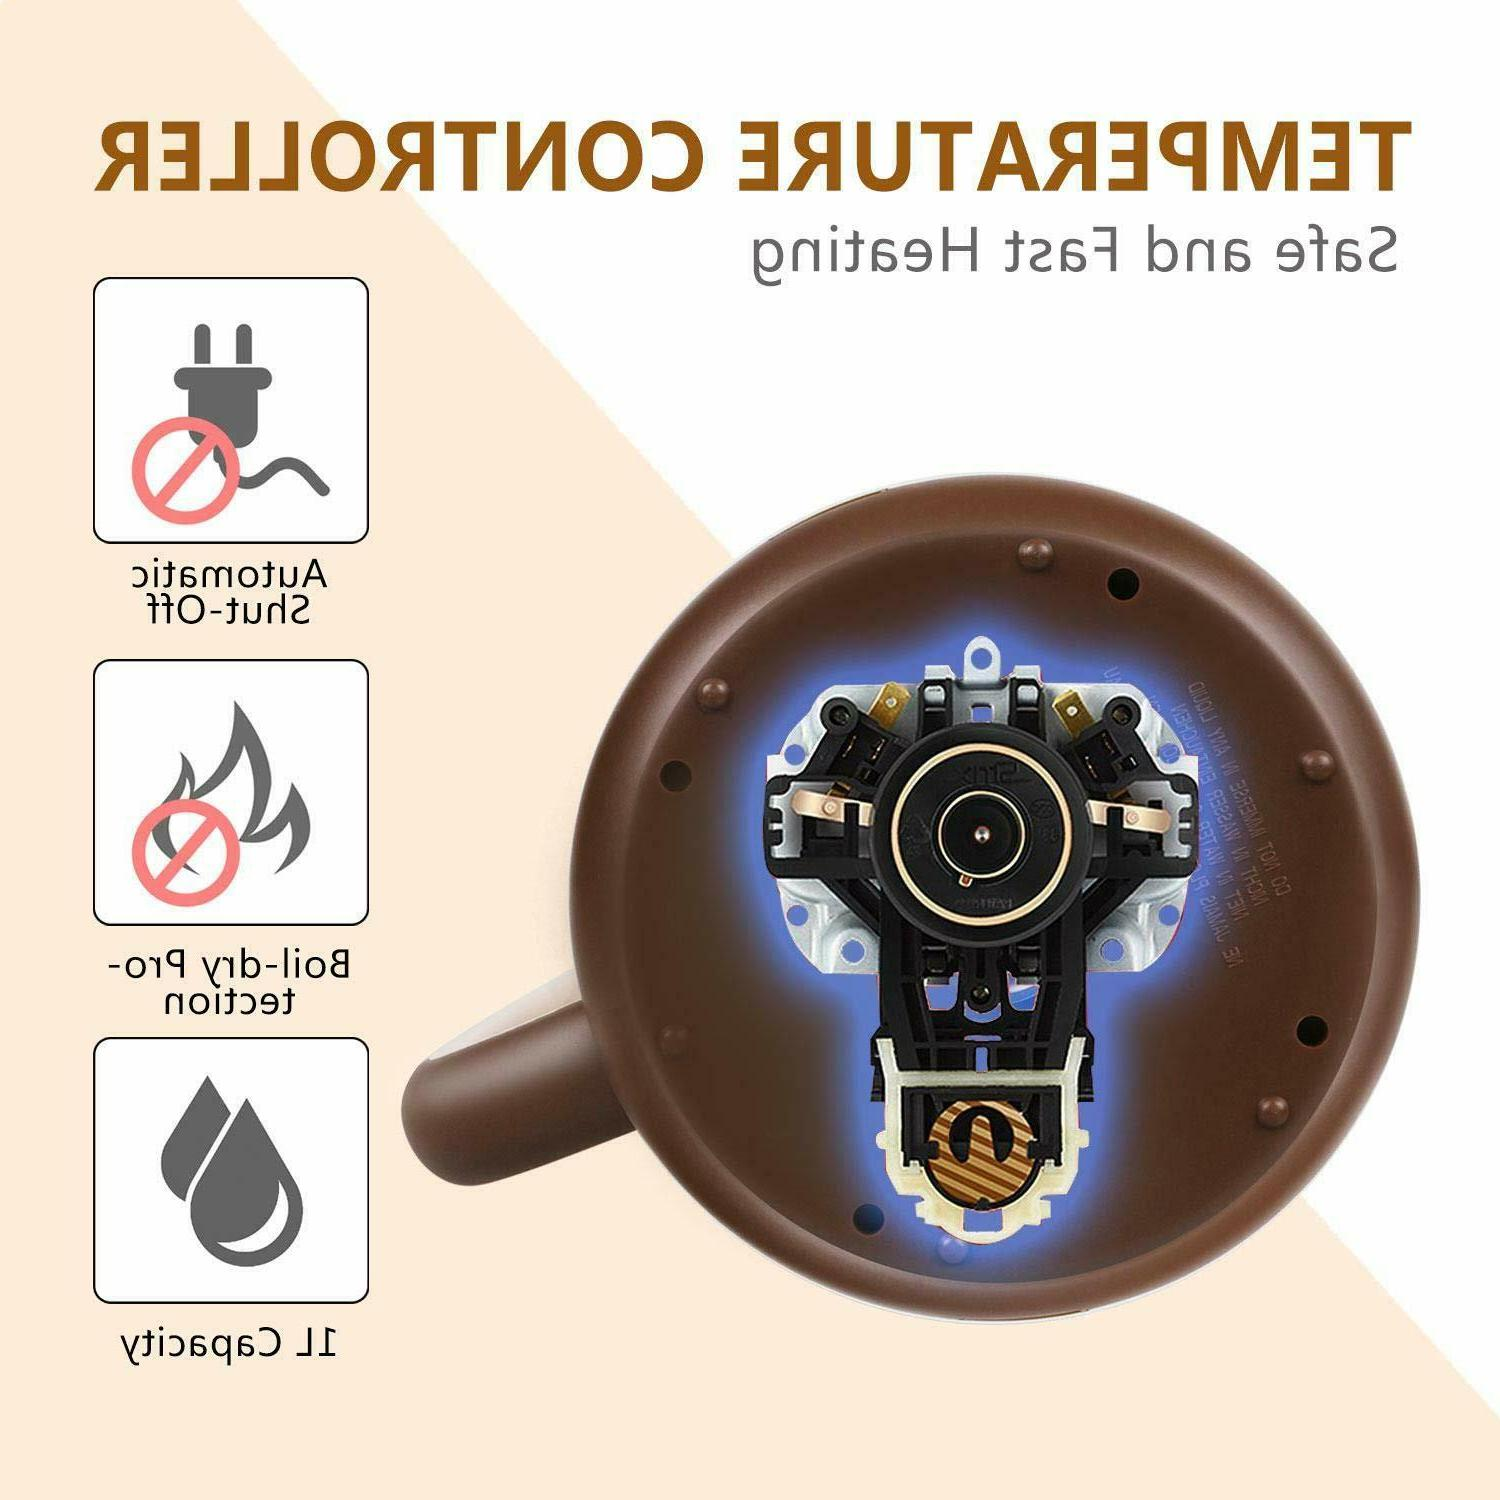 Mini Electric Hot Water travel heating boiler boil